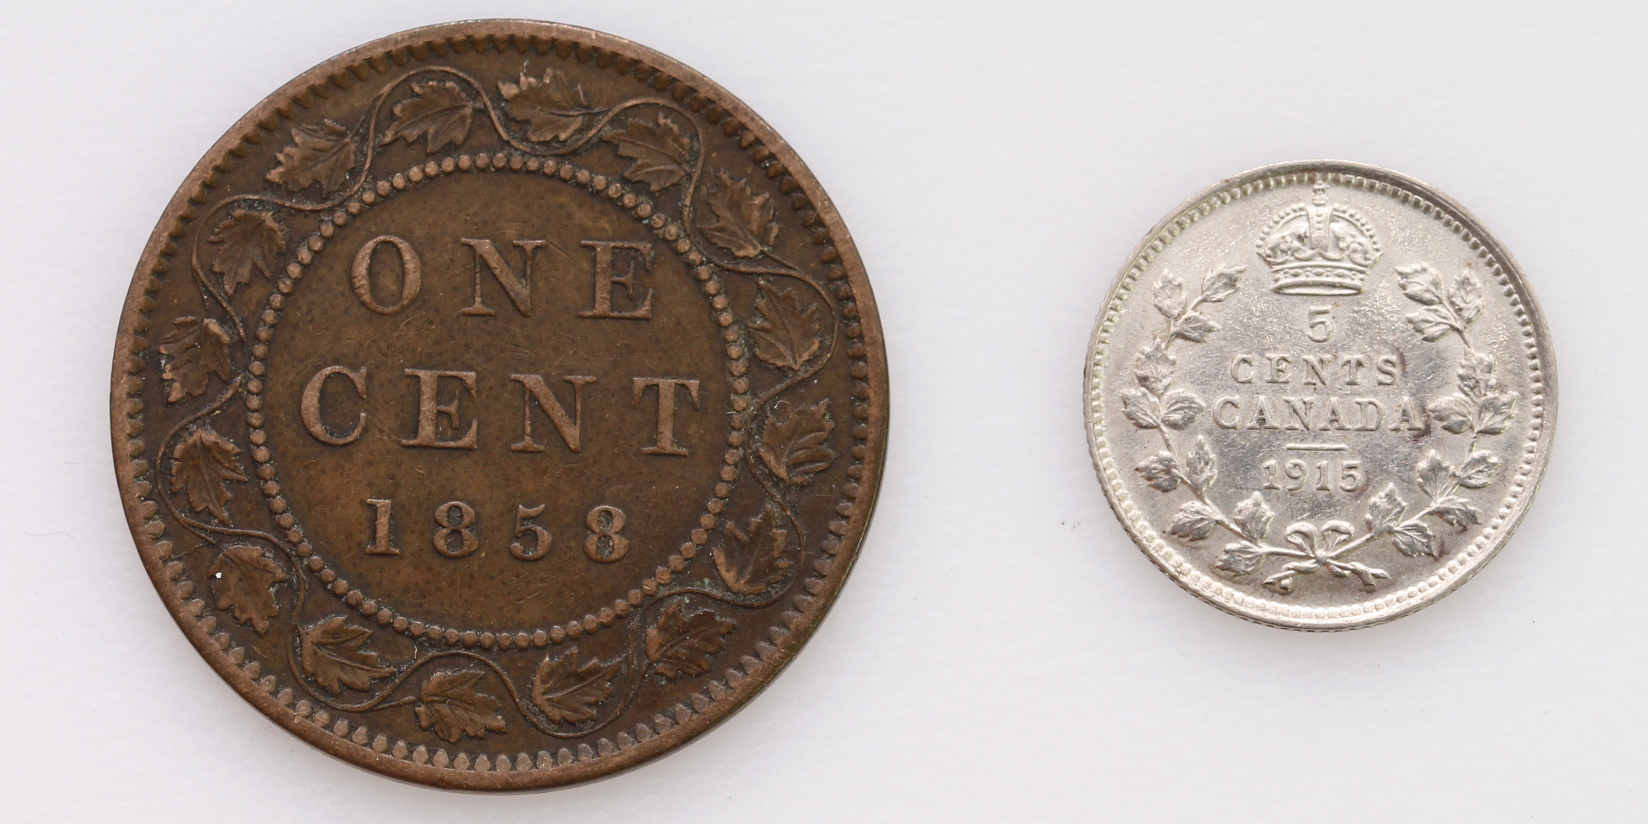 Canada (2): 5 Cents 1915 nEF, and One Cent 1858 medal alignment, VF - Image 2 of 2